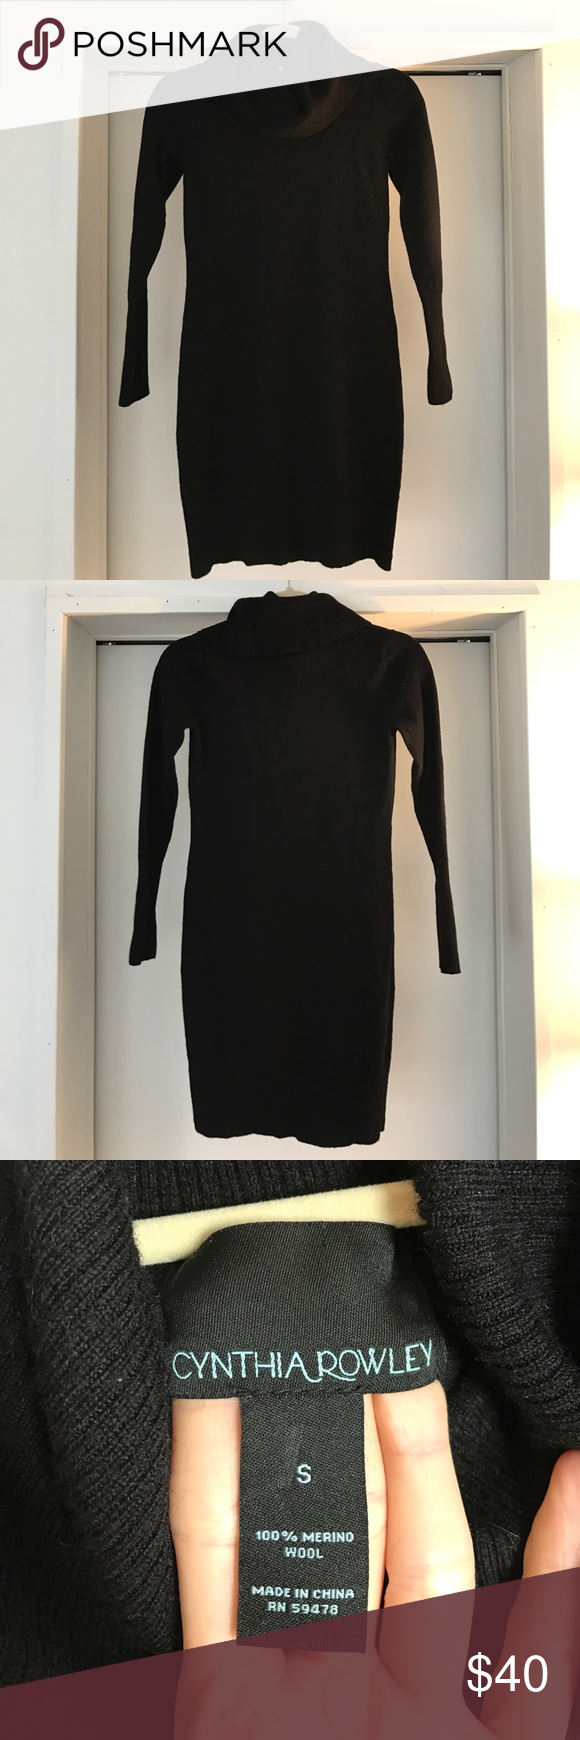 a9d0f56f045 Cynthia Rowley merino wool black sweater dress SM Great condition - black merino  wool sweater dress size small! I love this and it was so cozy it just ...